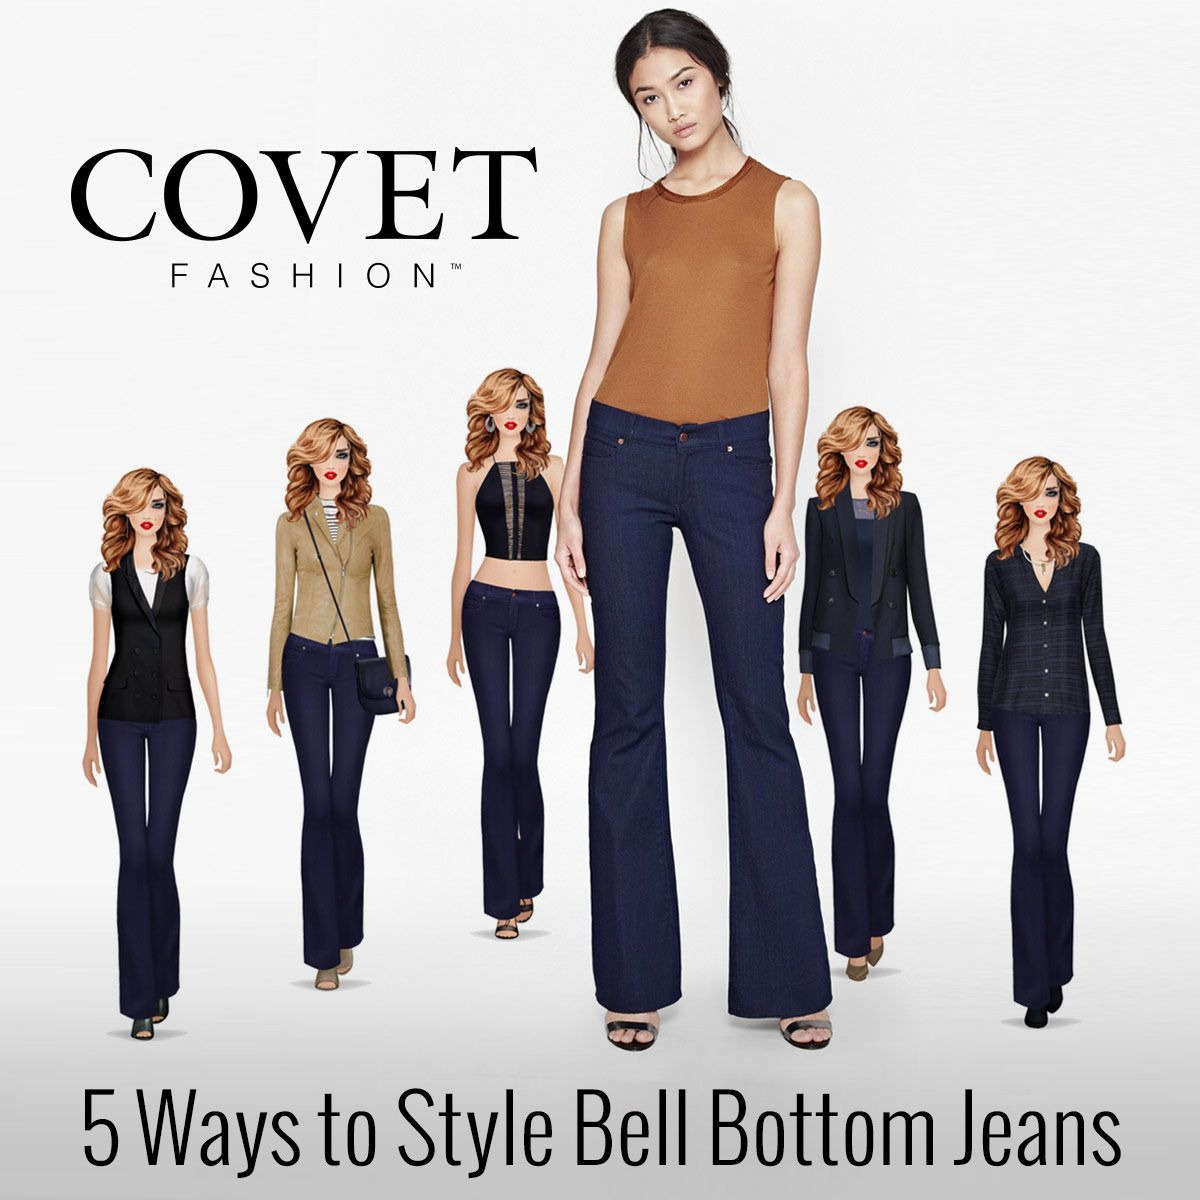 Style these French Connection Bell Bottom jeans in Covet Fashion!